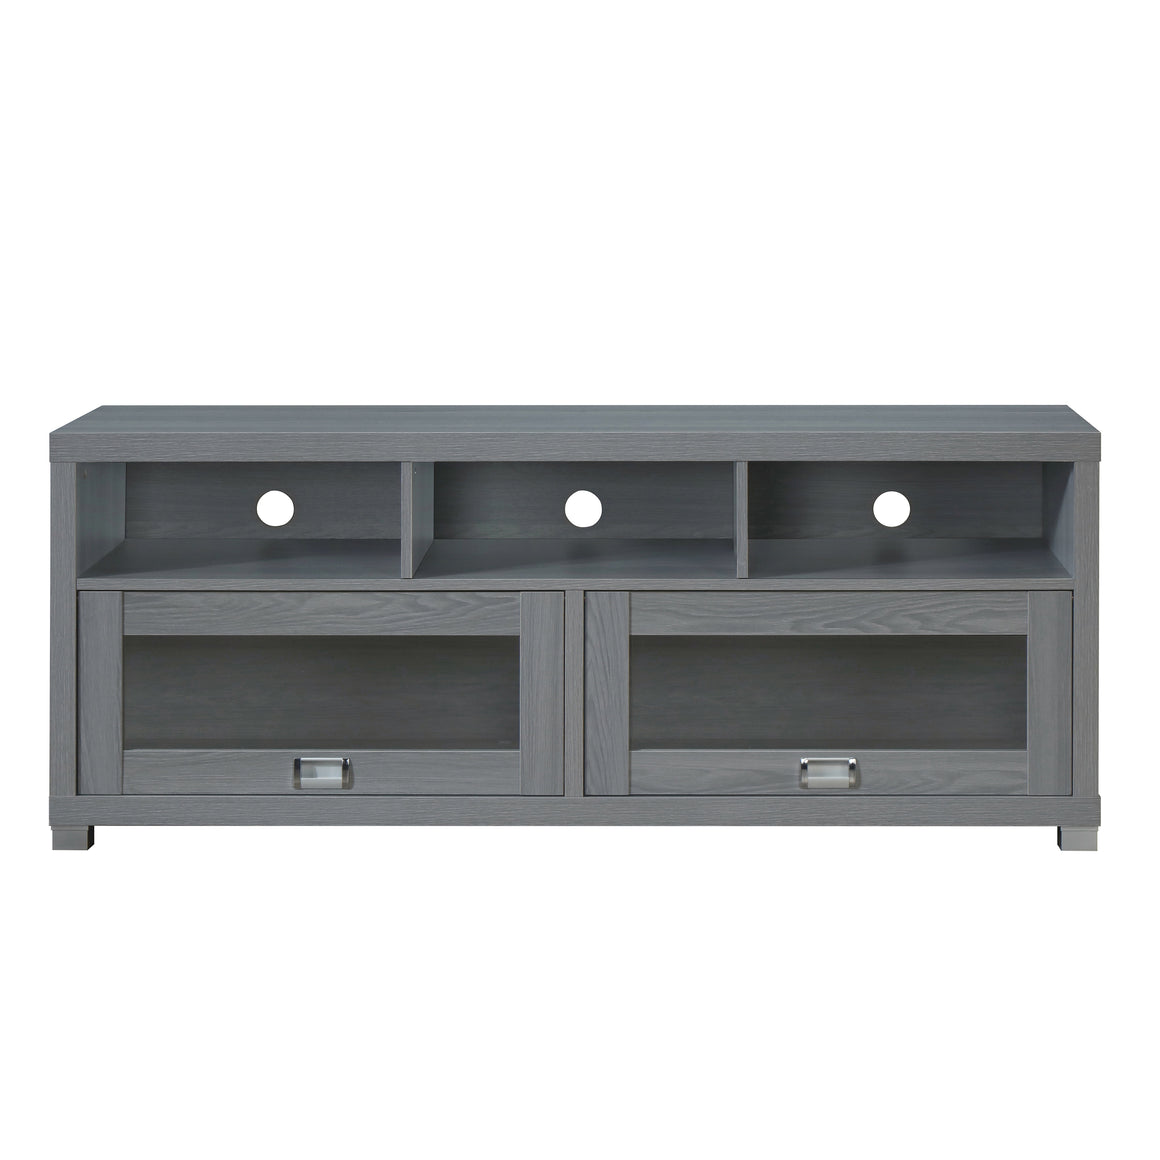 Techni Mobili Durbin TV Stand, for TVs up to 60""